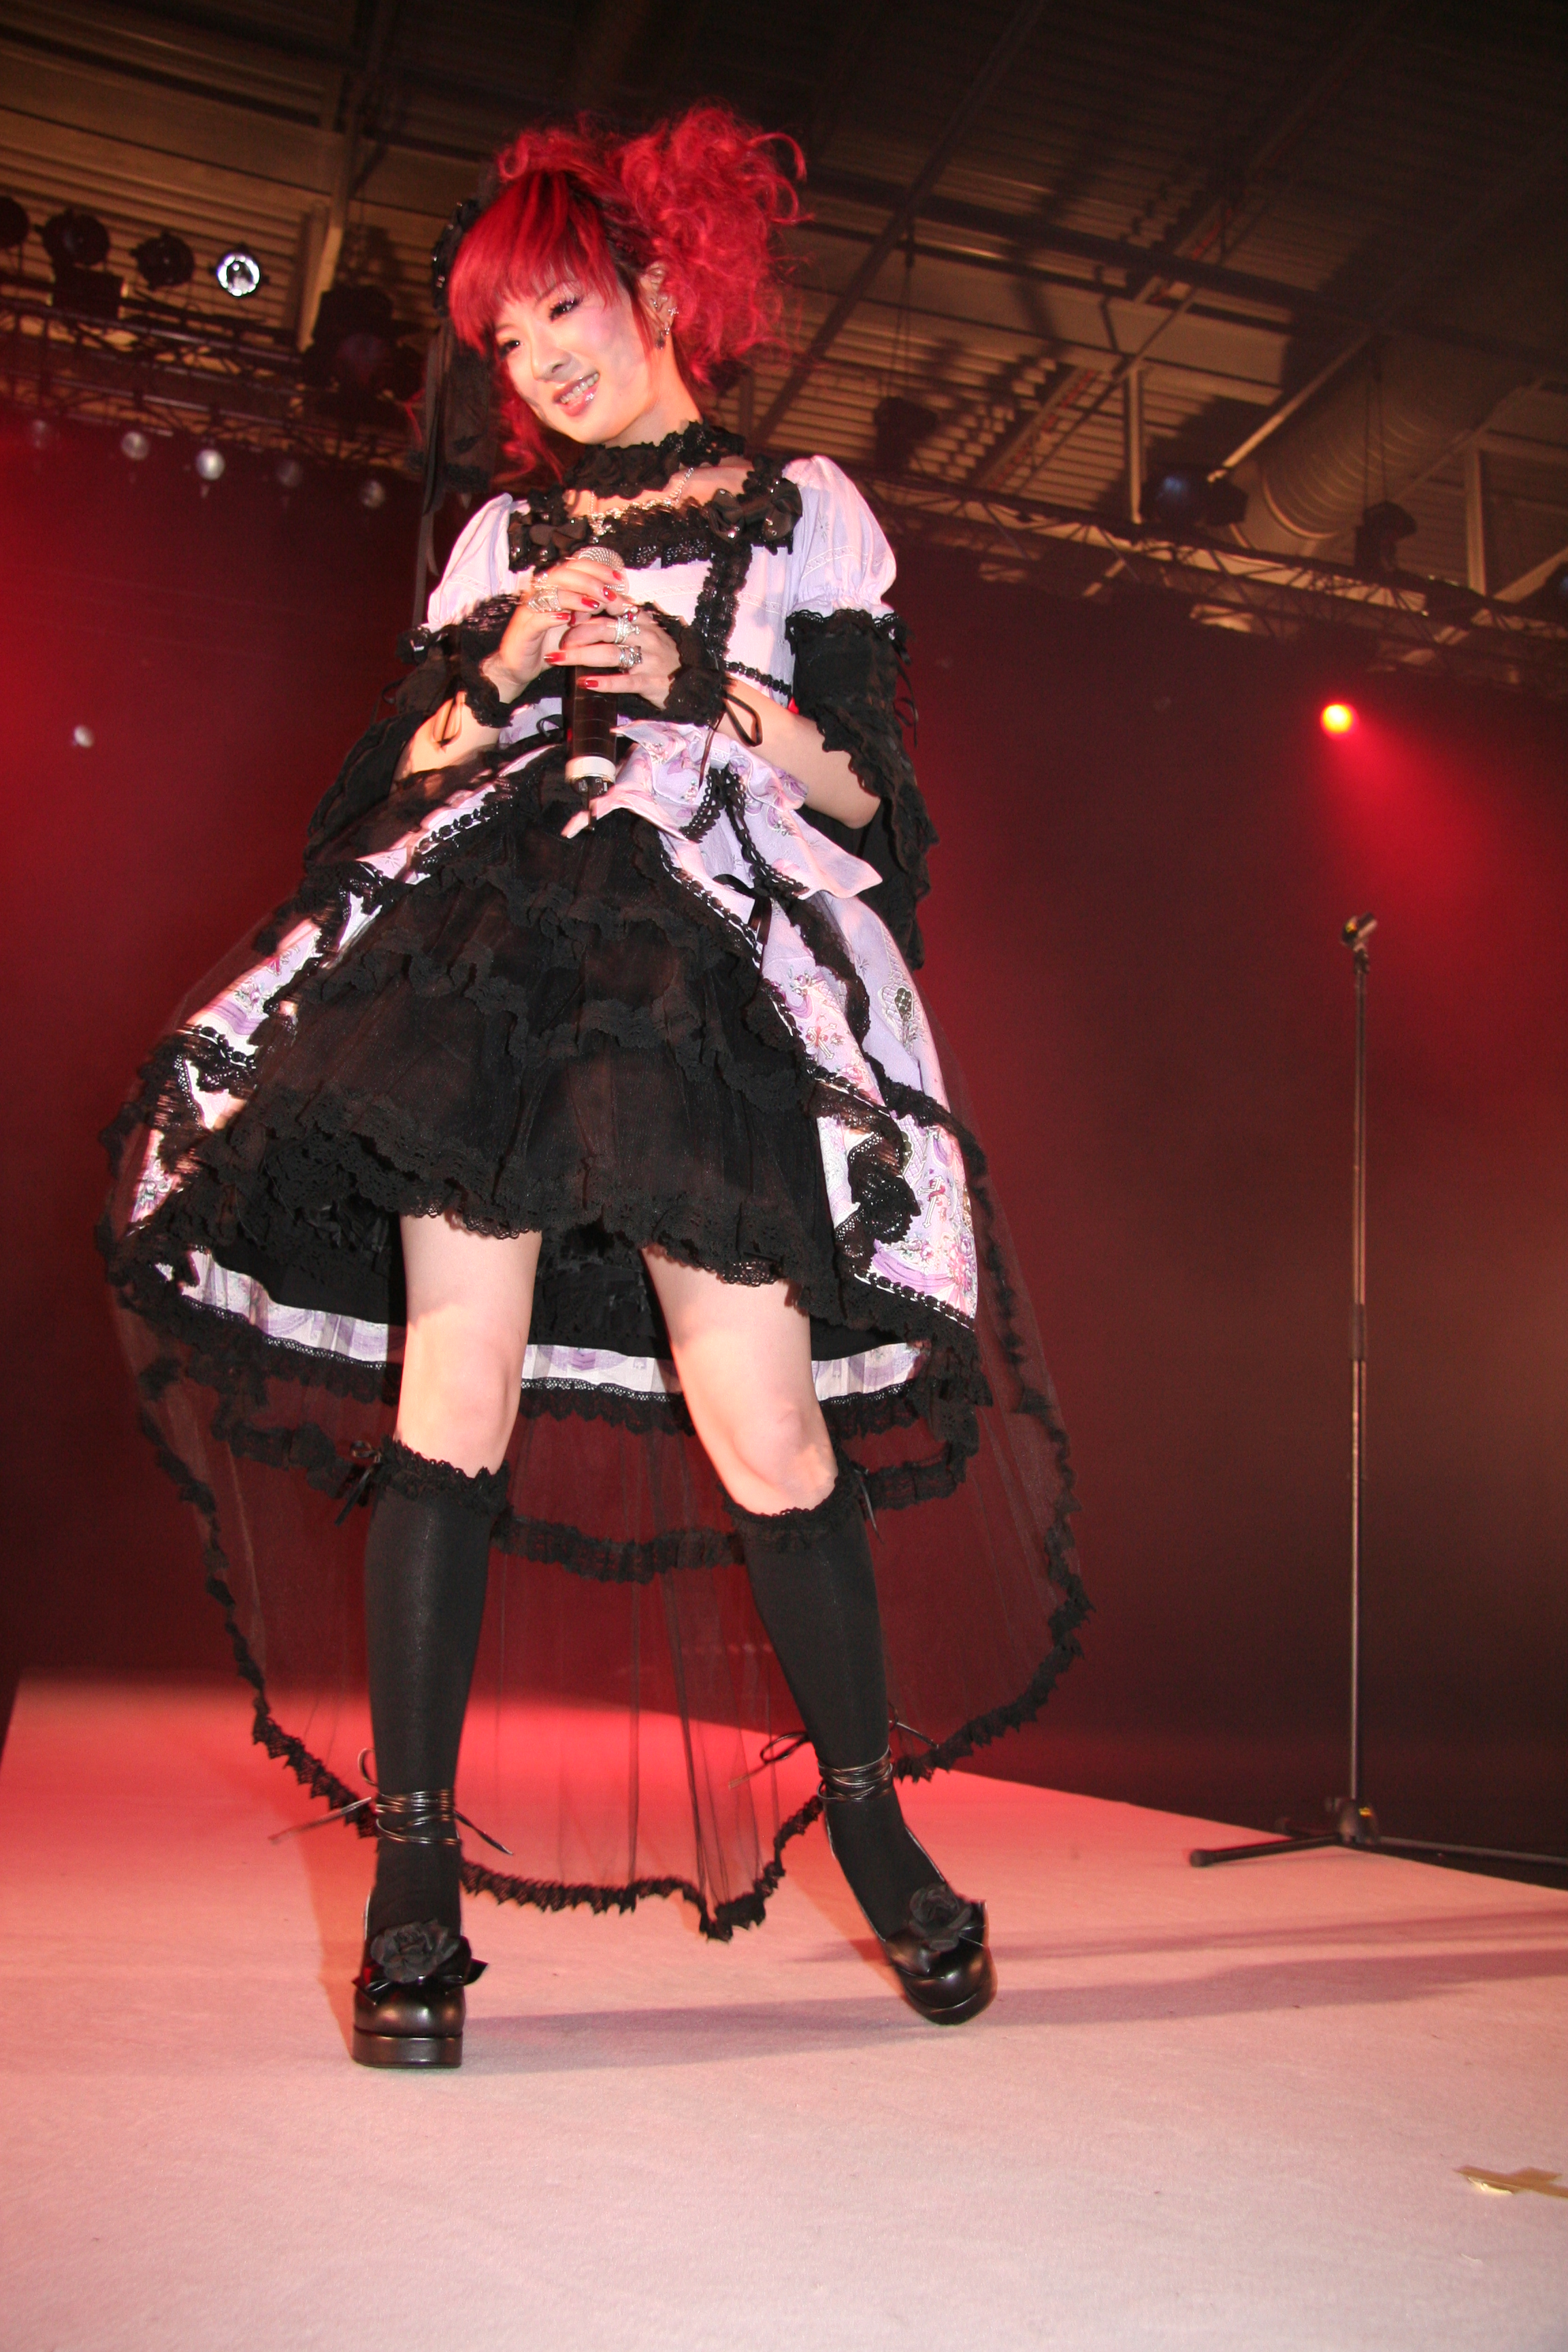 http://upload.wikimedia.org/wikipedia/commons/7/78/Nana_Kitade_20070707_Japan_Expo_09.jpg